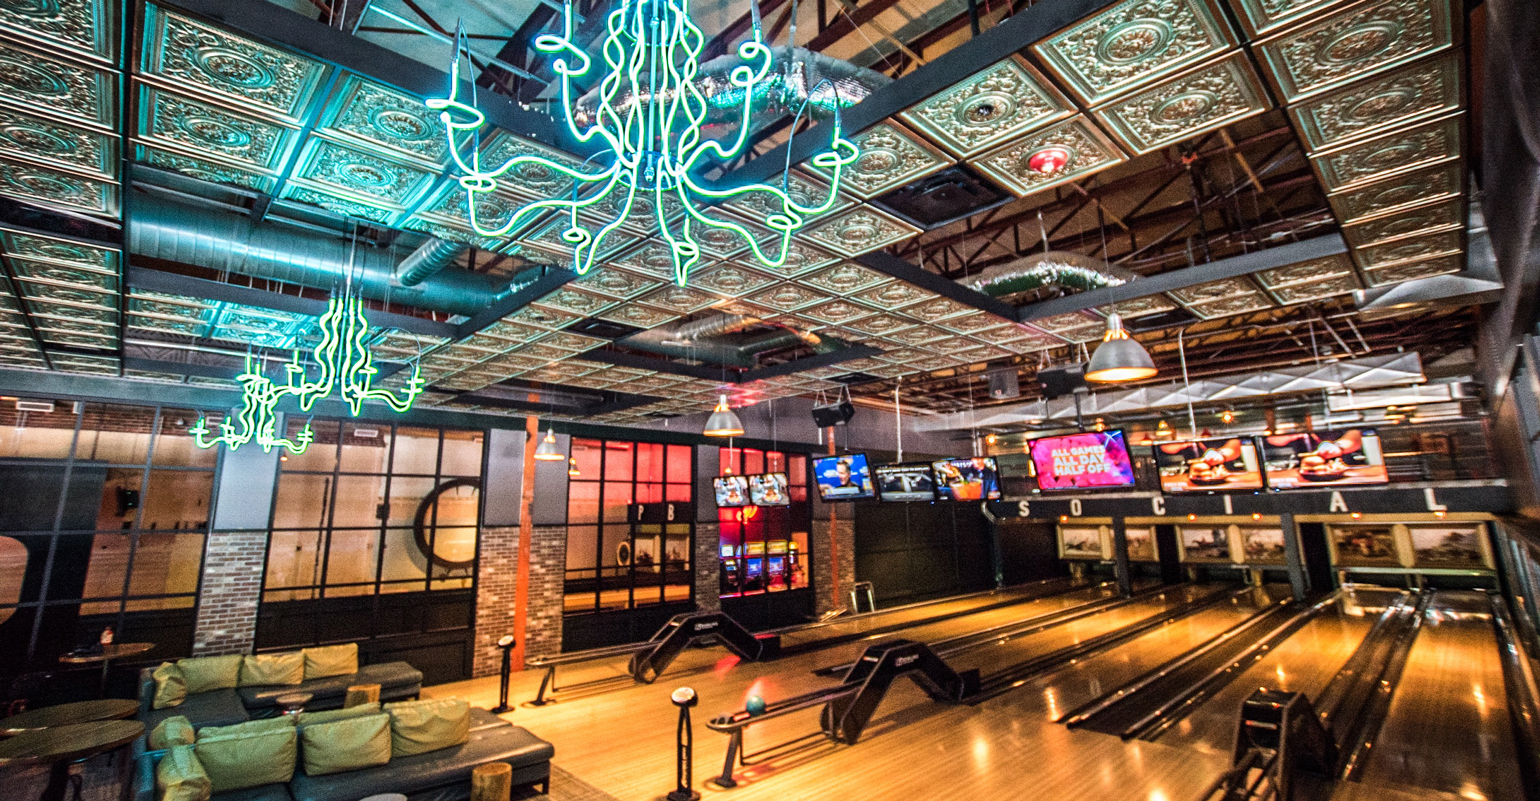 Punch Bowl Social Accelerating Growth Of Eatertainment